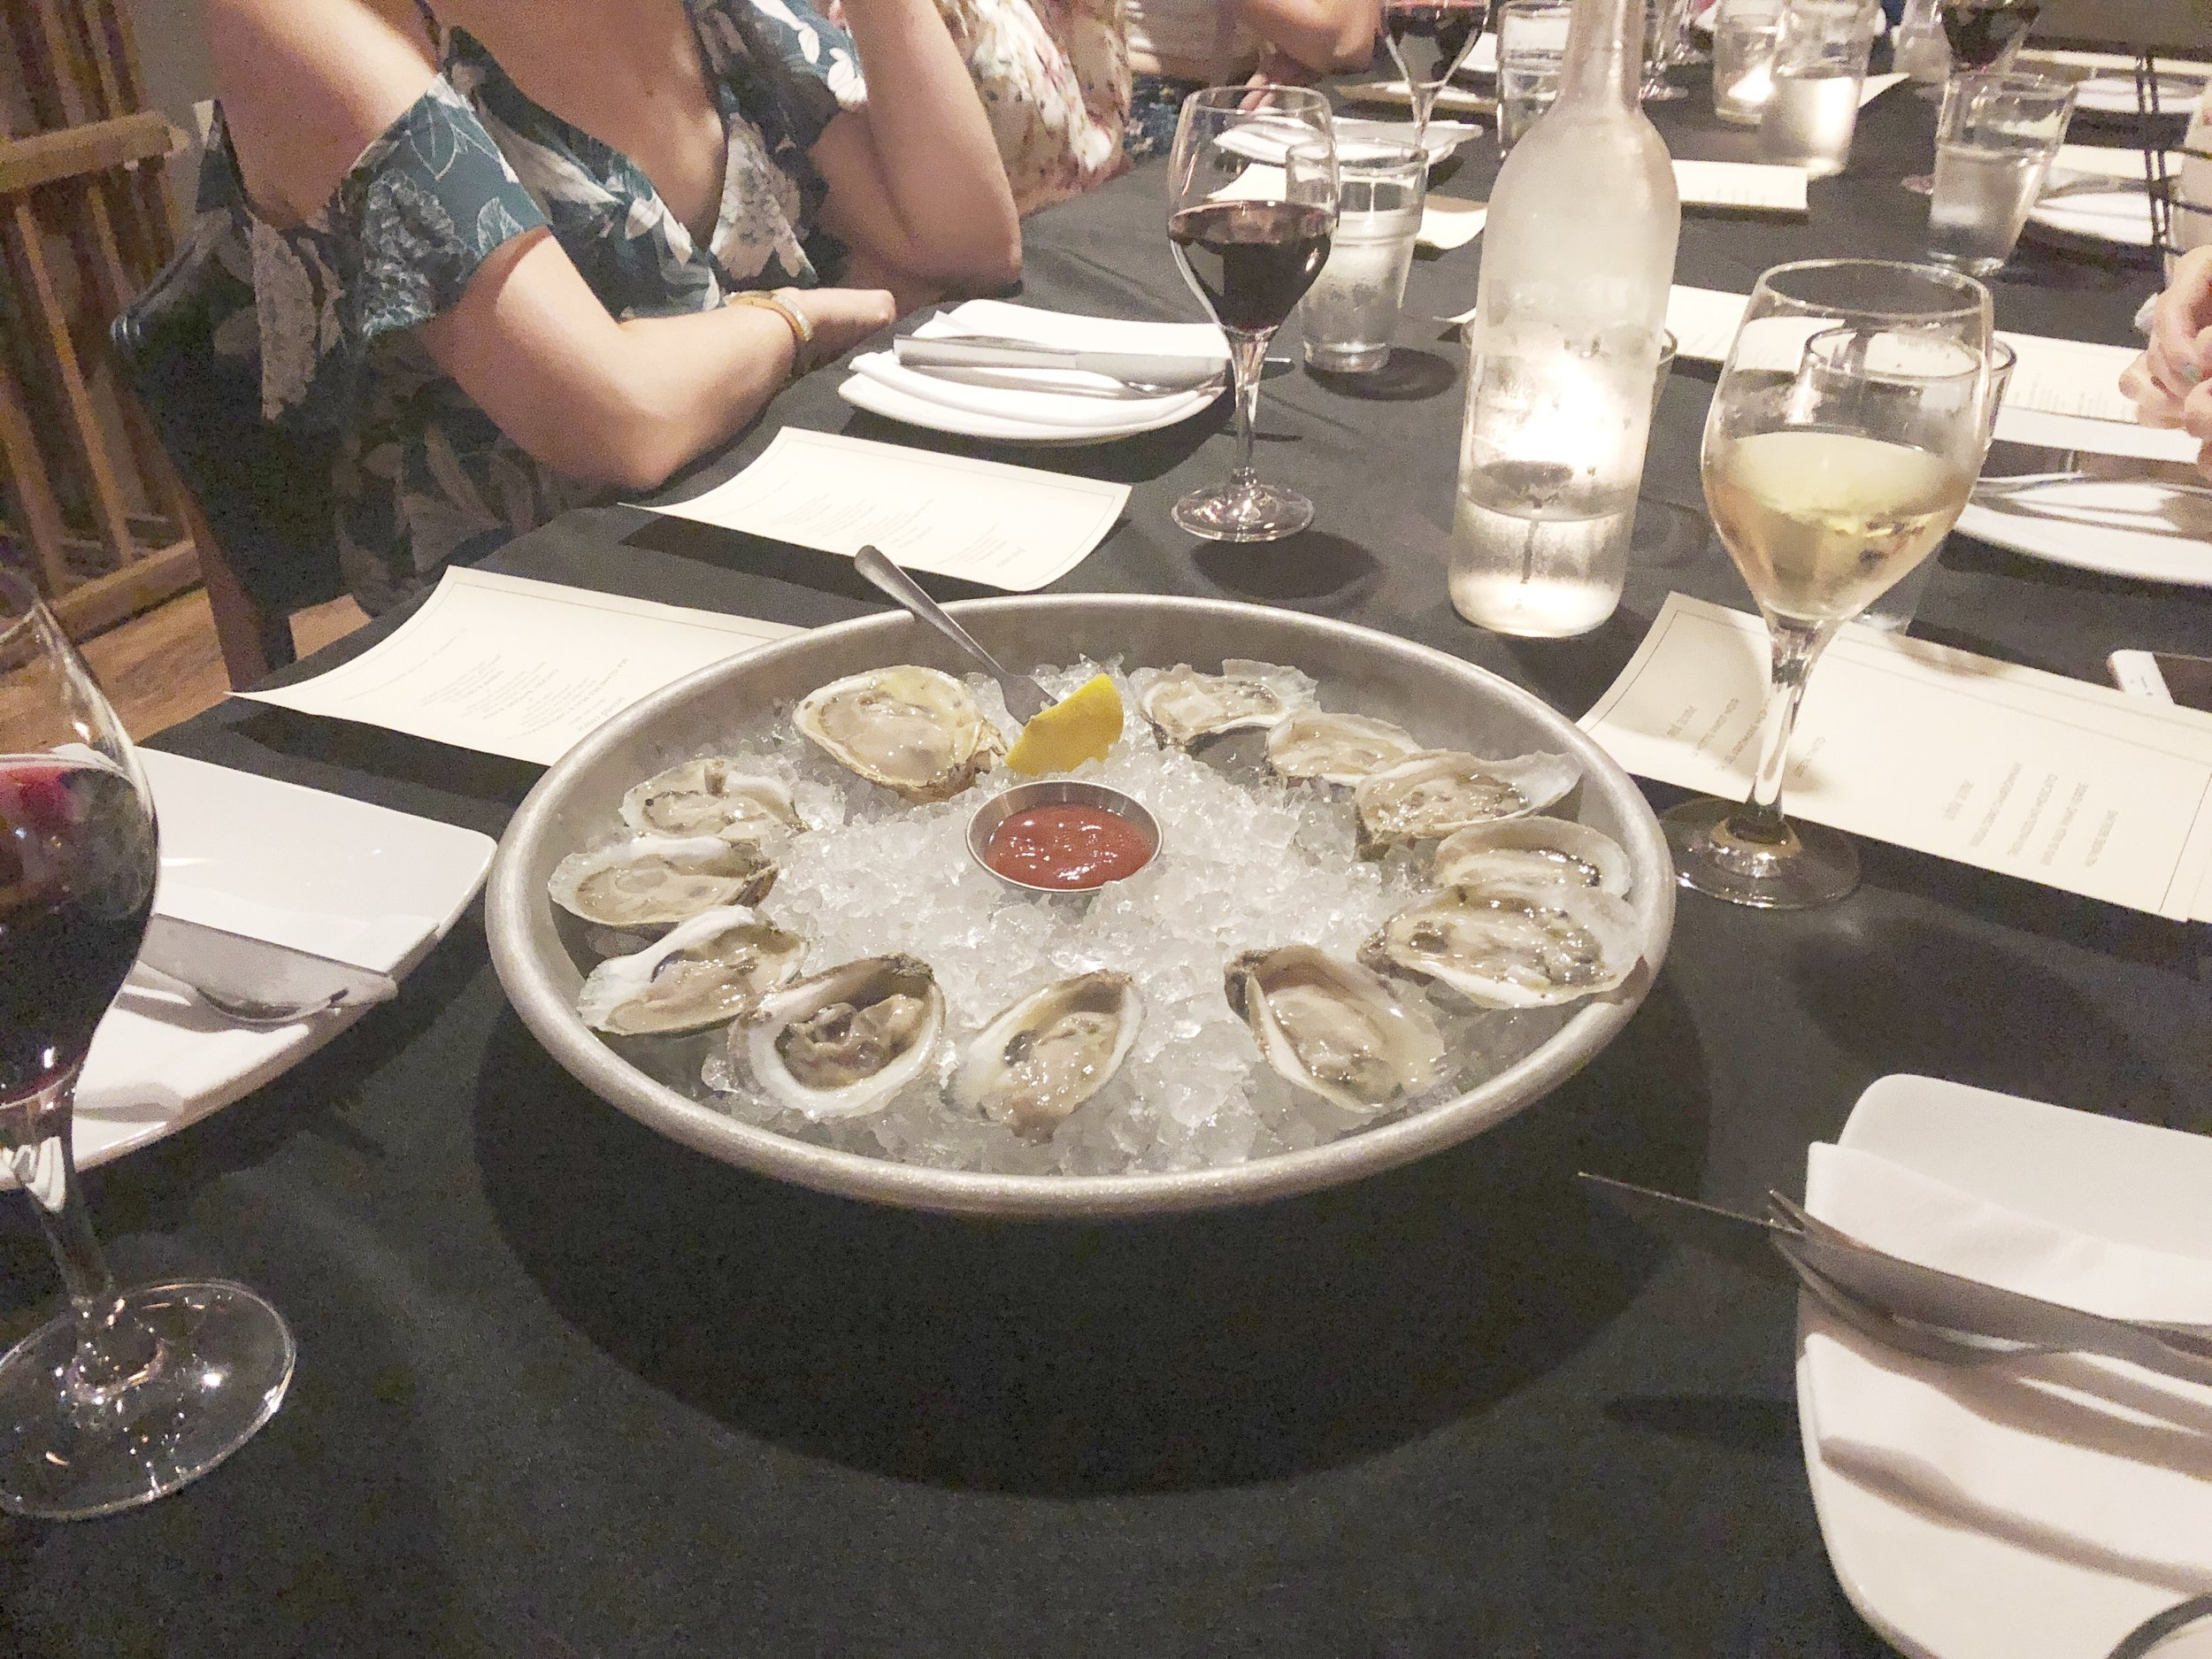 Of course we had to add an order of oysters because they are the BEST!